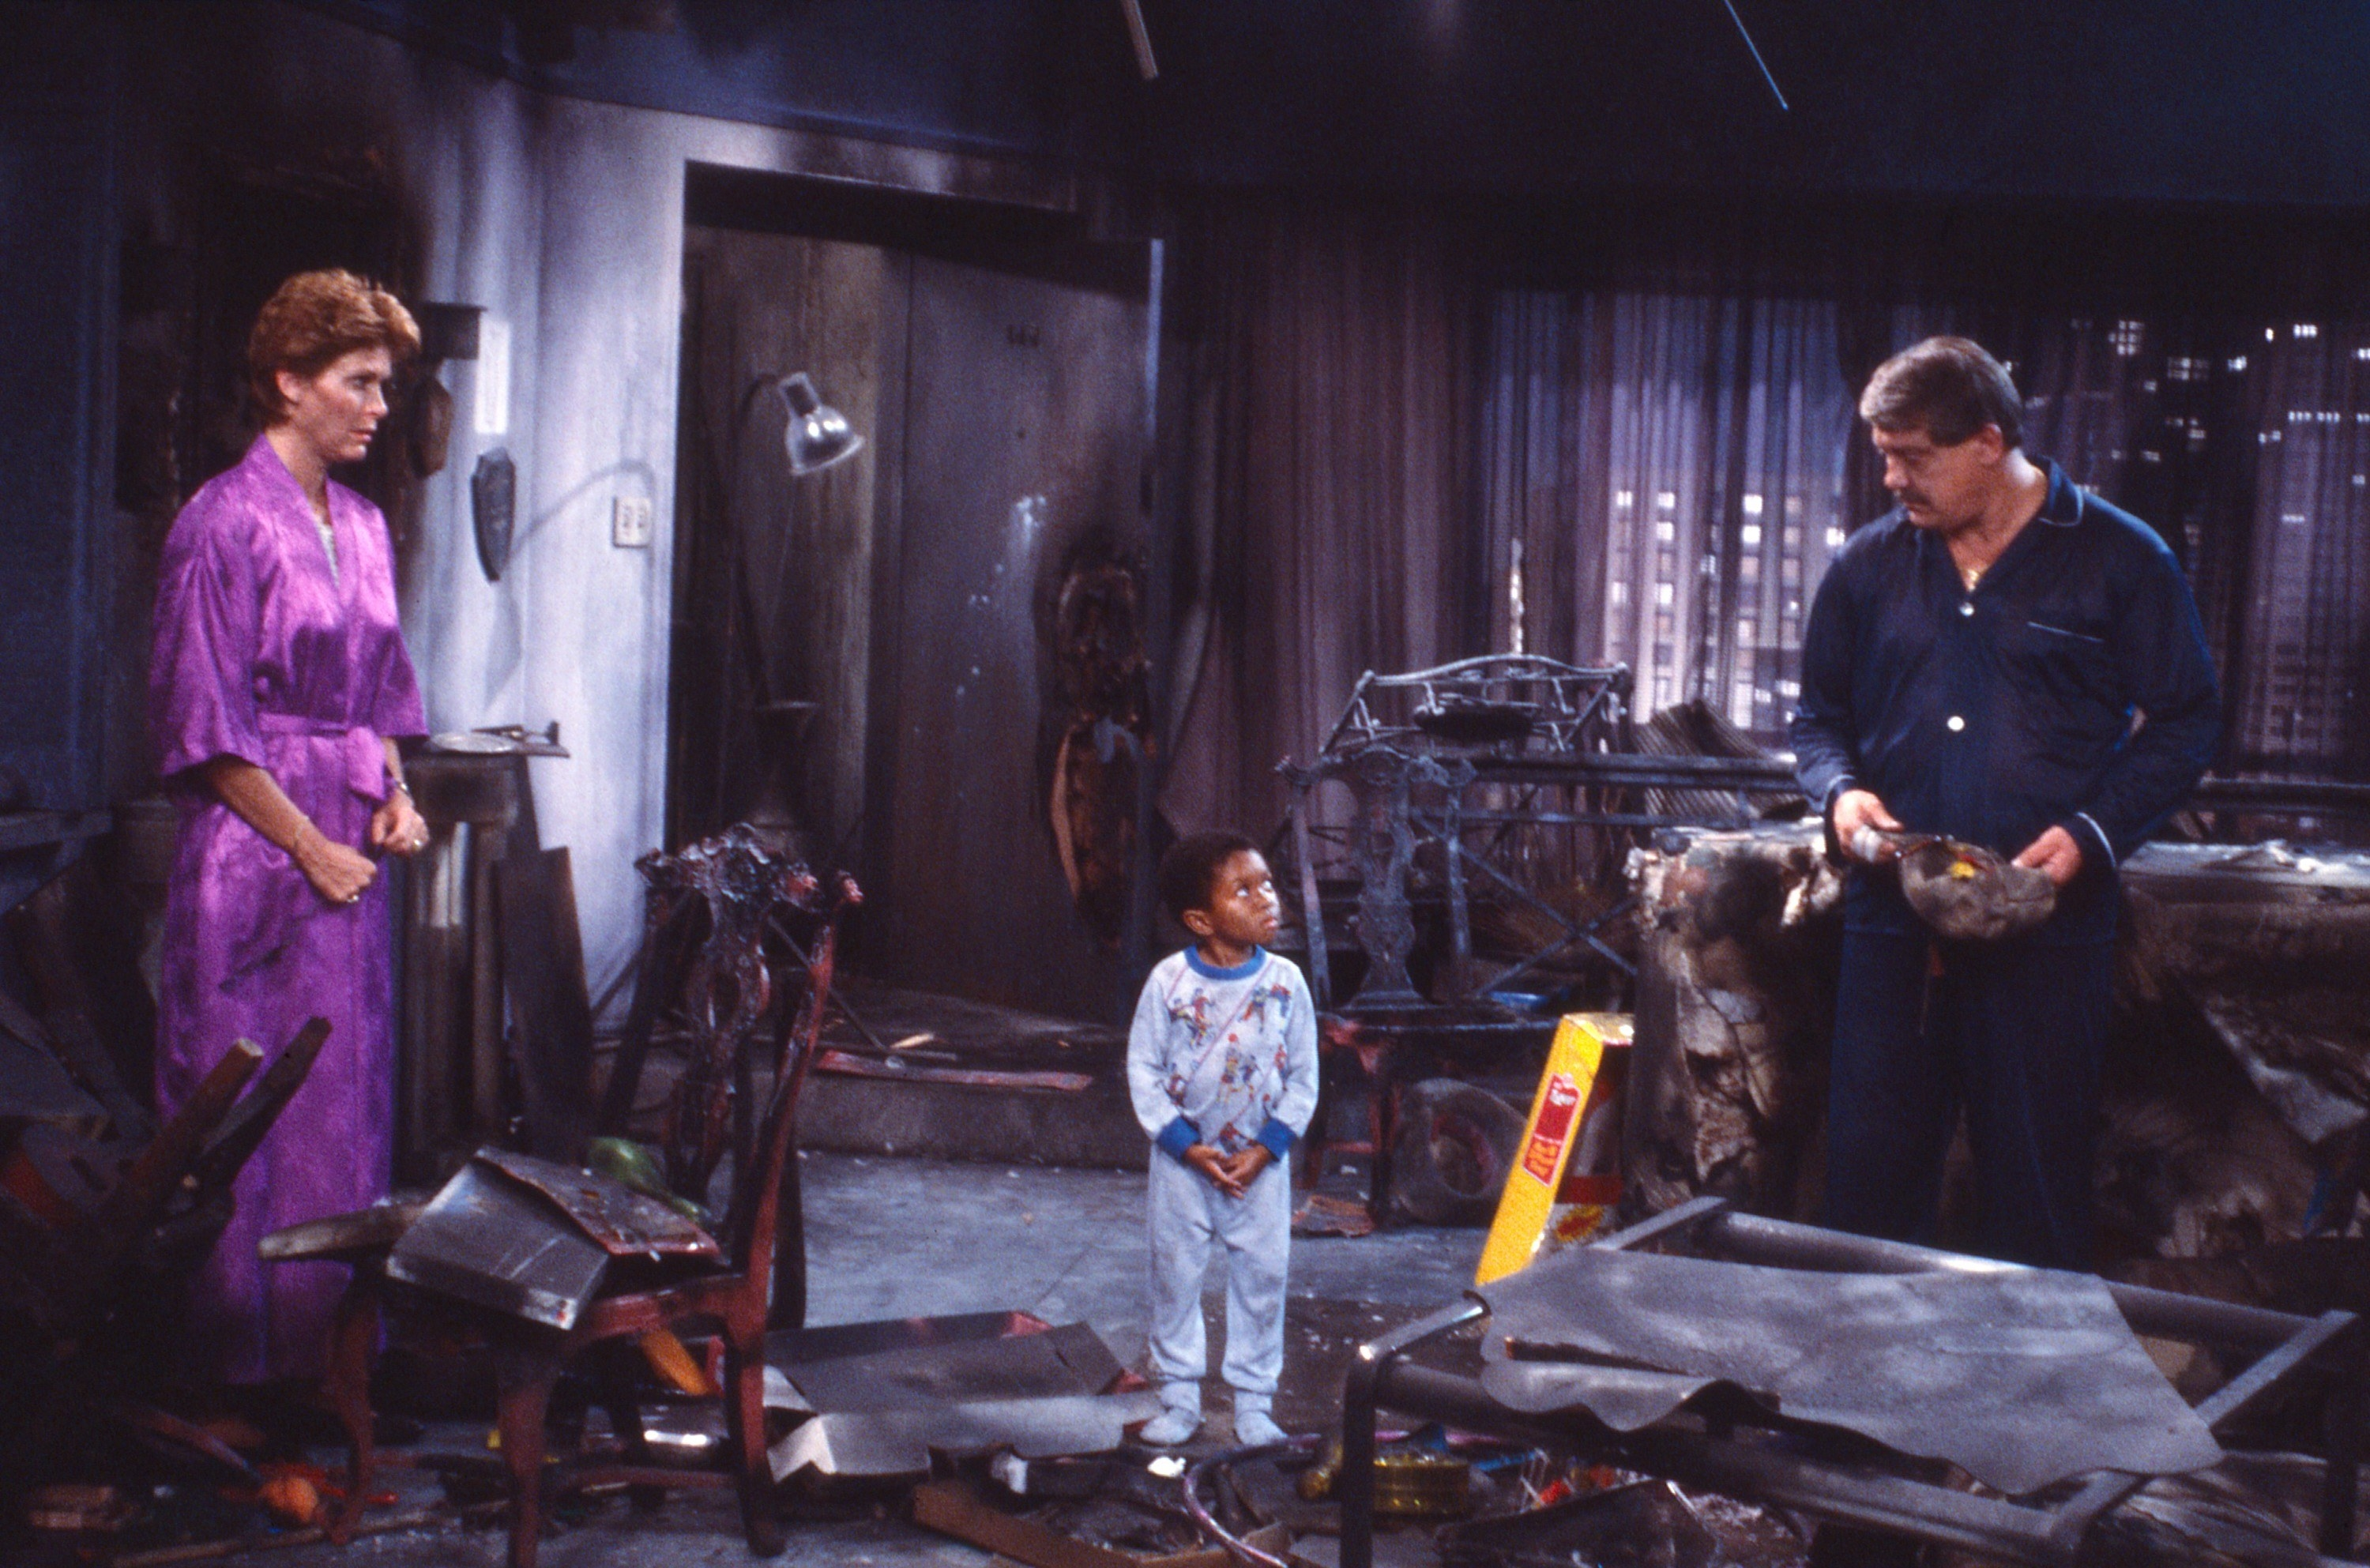 Webster standing in burned down apartment with his parents looking shocked